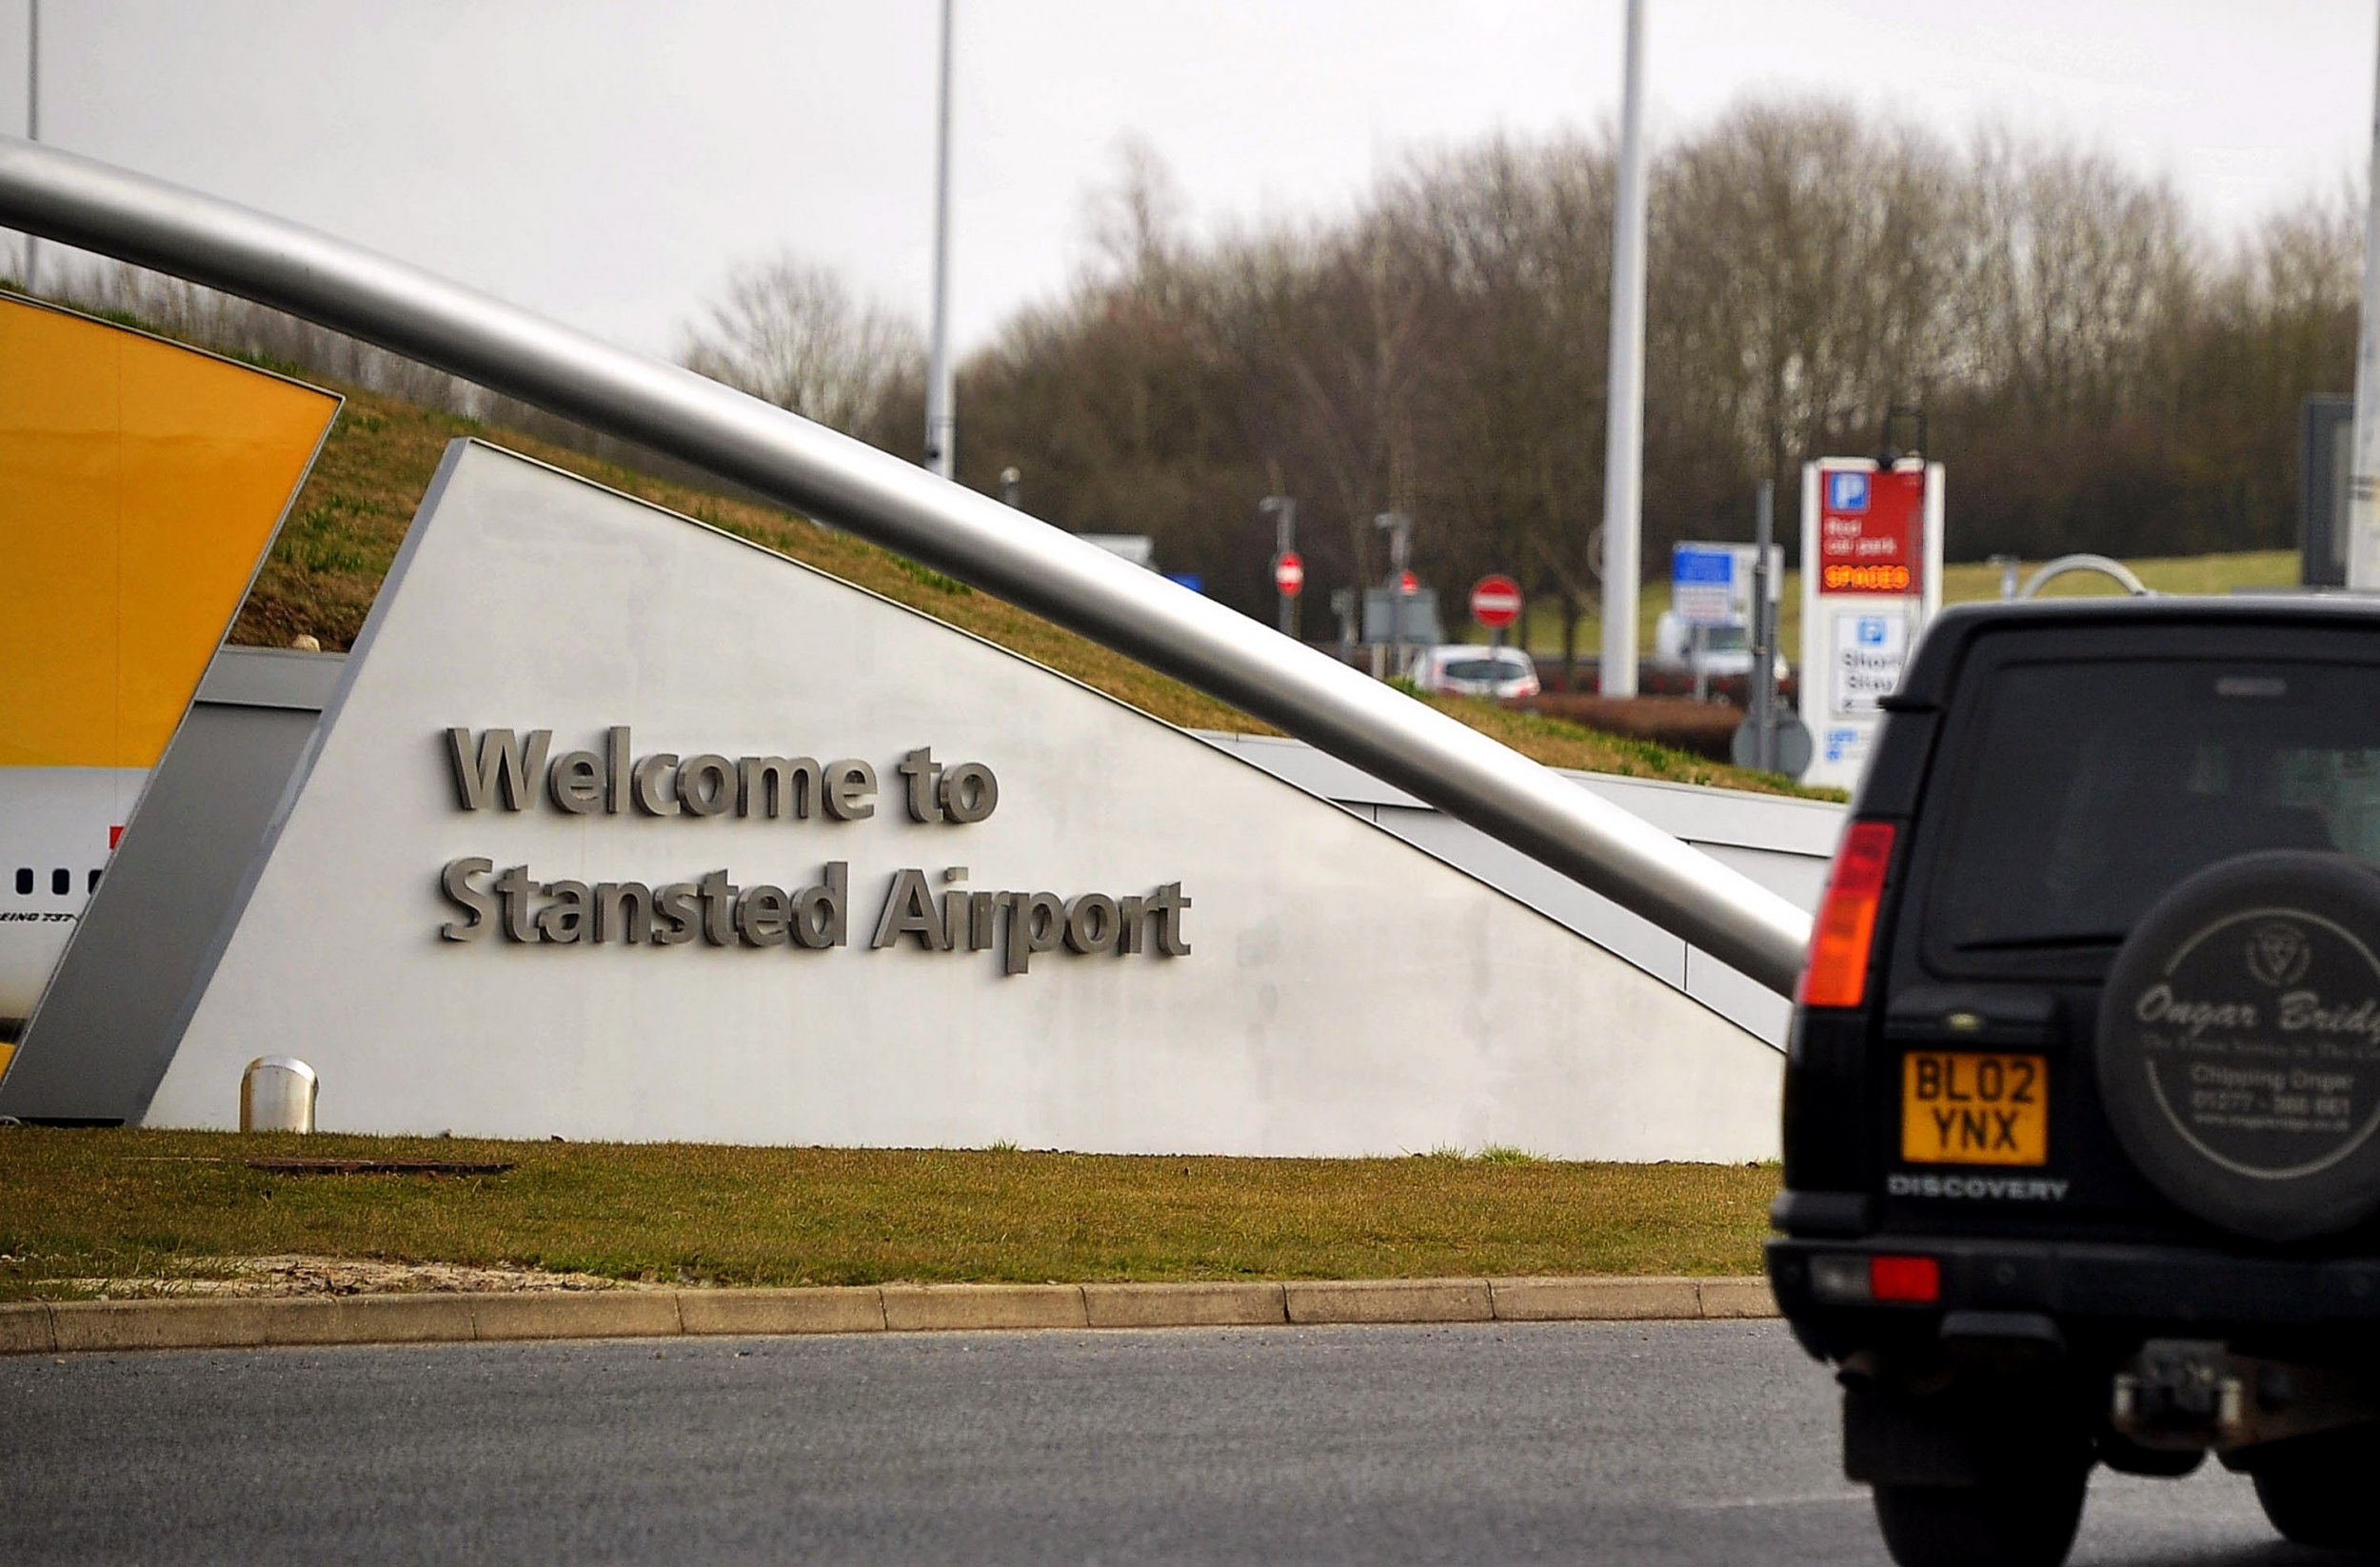 stansted 15, activists deportation flight